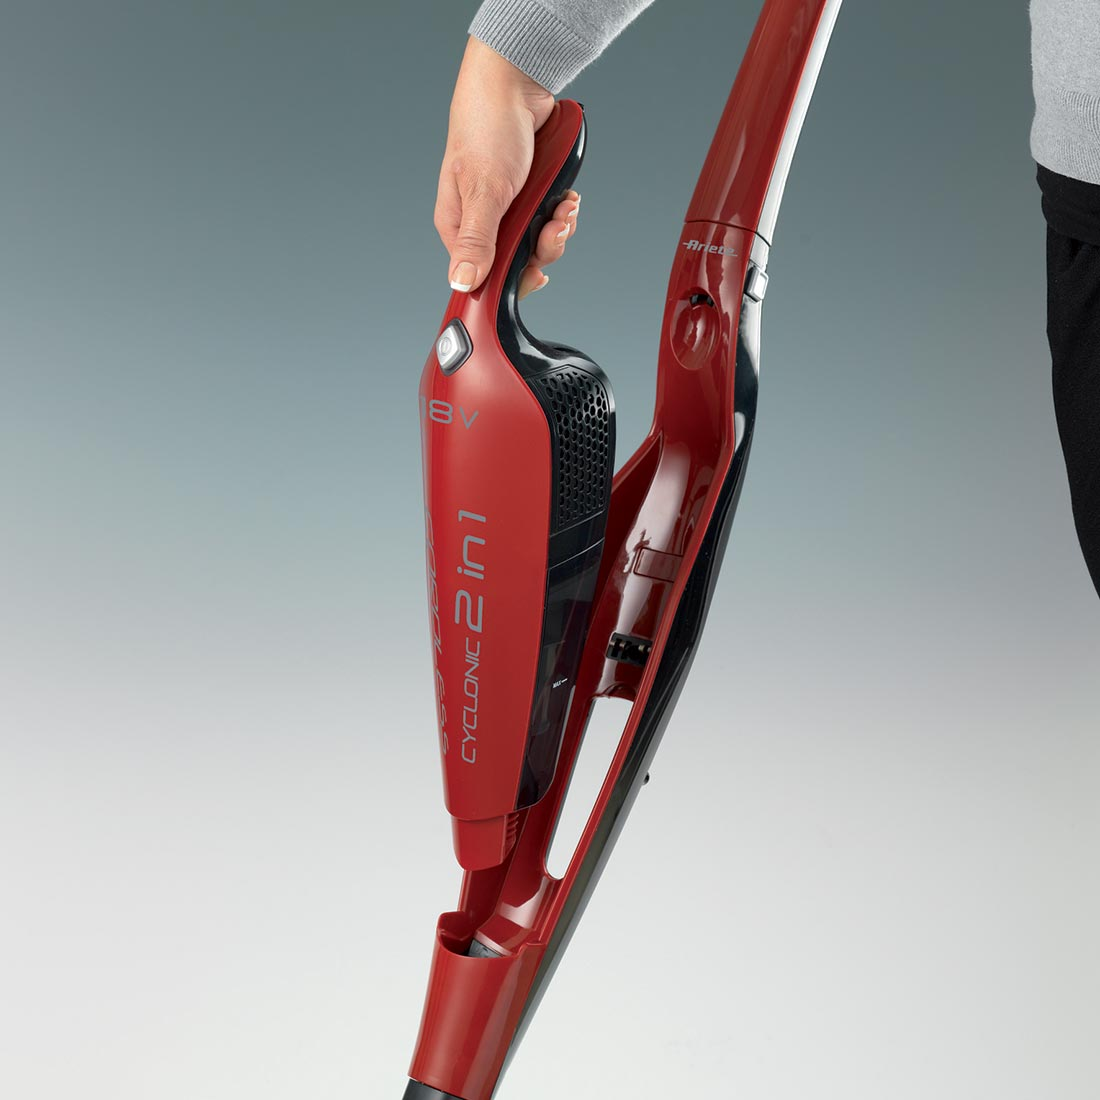 Ariete aspirapolvere scopa elettrica cordless evo 2 in 1 for Ariete evo 2 in 1 cordless